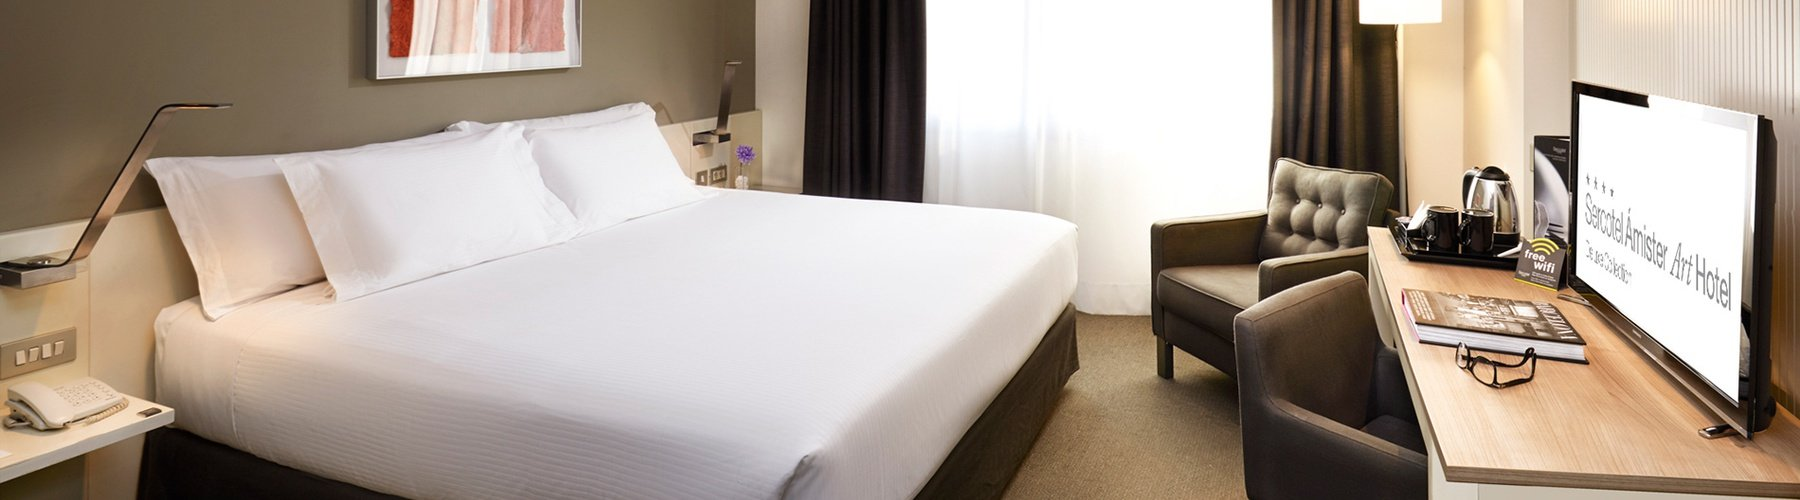 Rooms - Sercotel Ámister Art Hotel